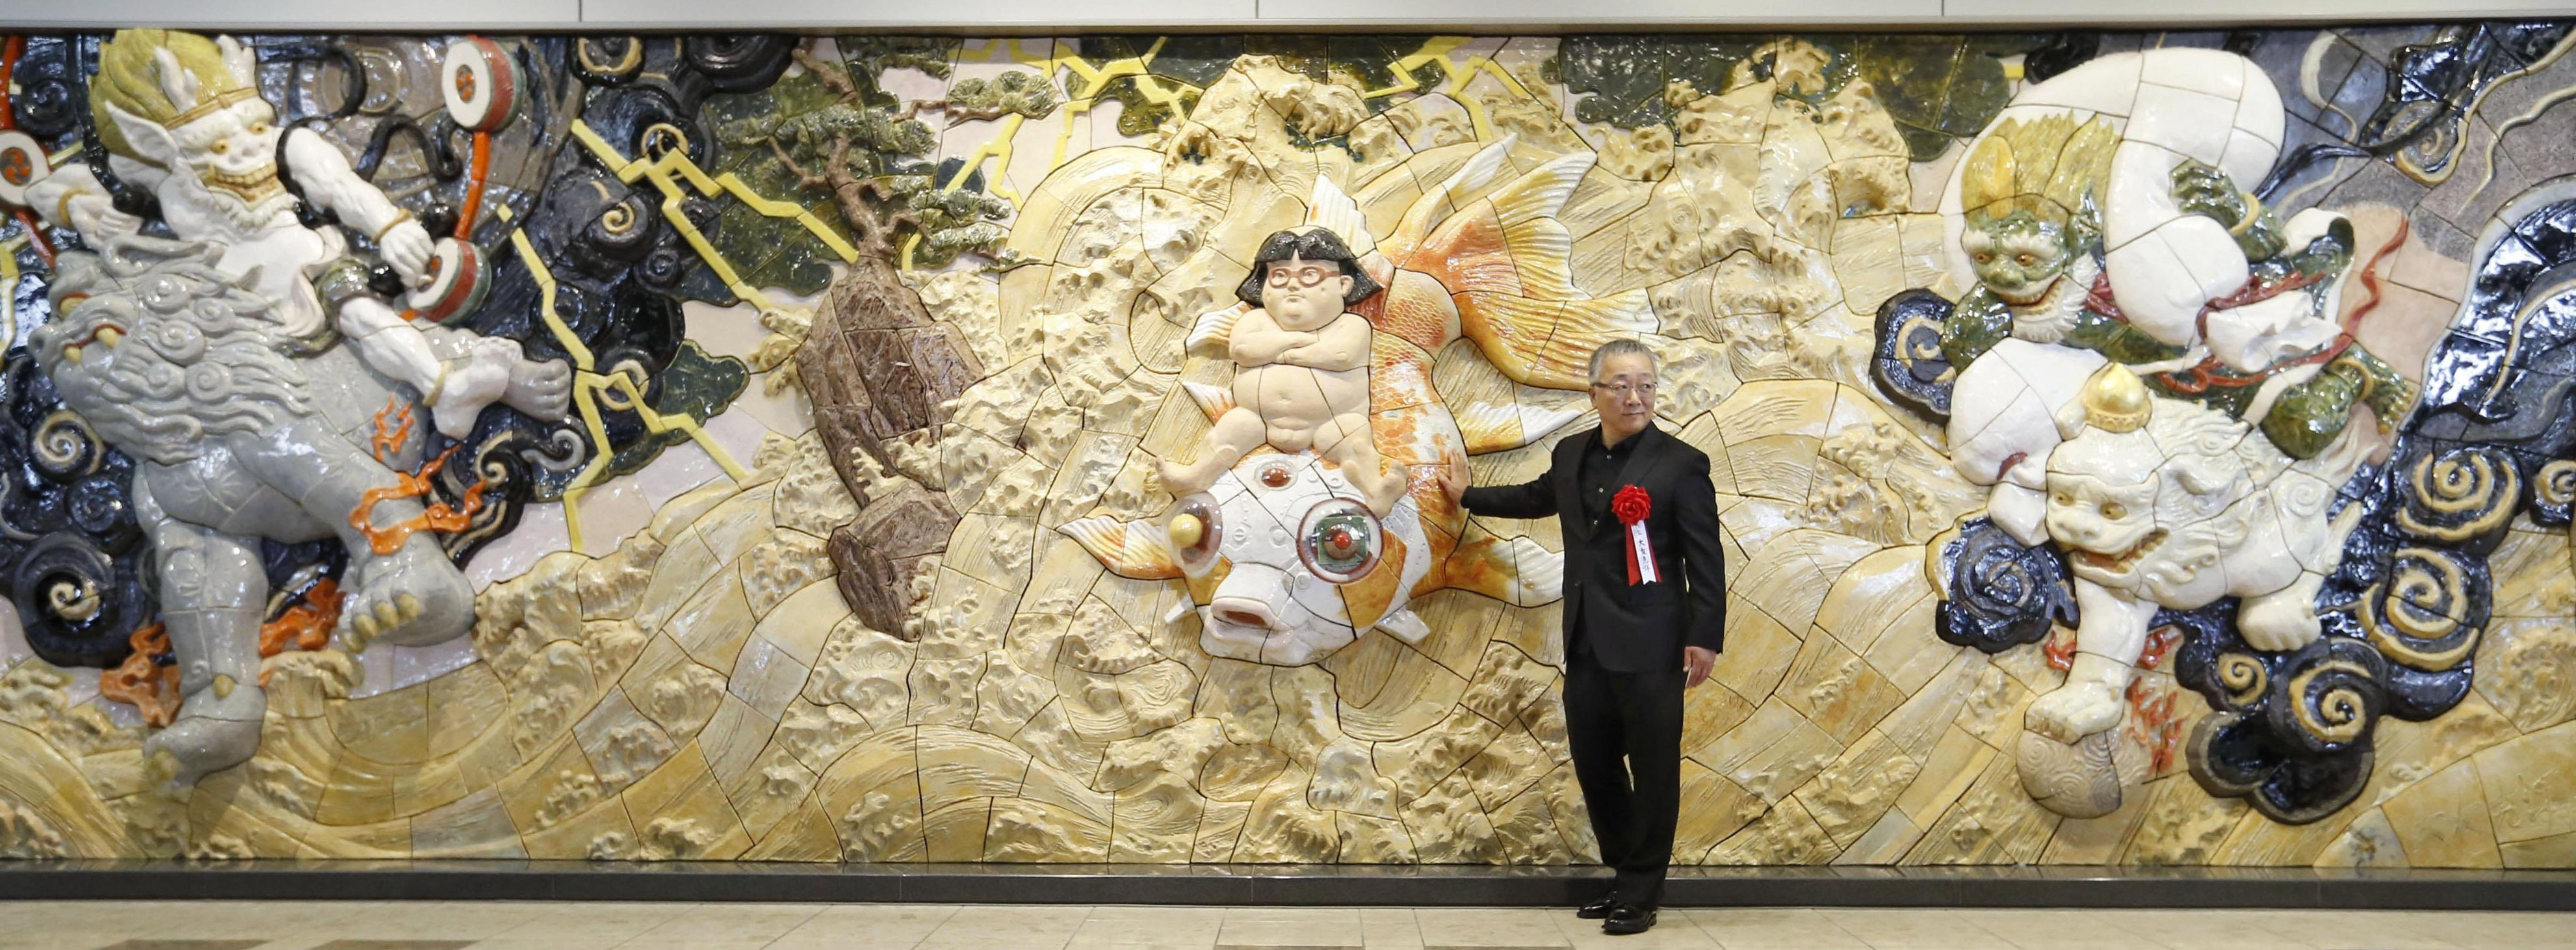 Internationally renowned manga artist Katsuhiro Otomo stands next to a porcelain relief unveiled Thursday at Sendai Airport for victims of the 3/11 disasters. | KYODO